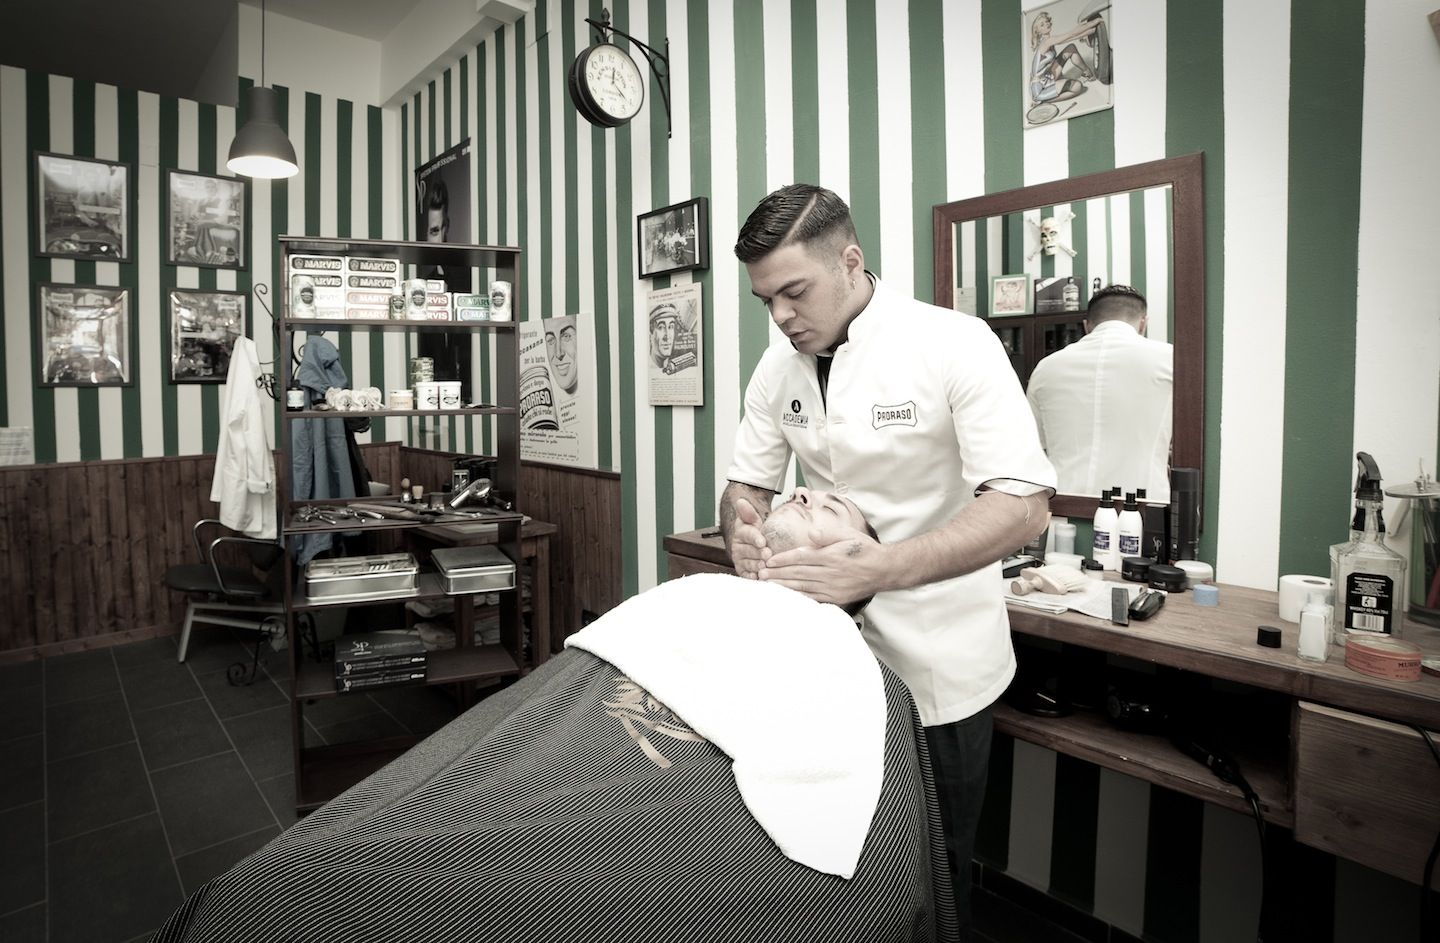 Barber Blues : Blues Barber Shop a Firenze ? una barberia, parrucchiere per uomo ...